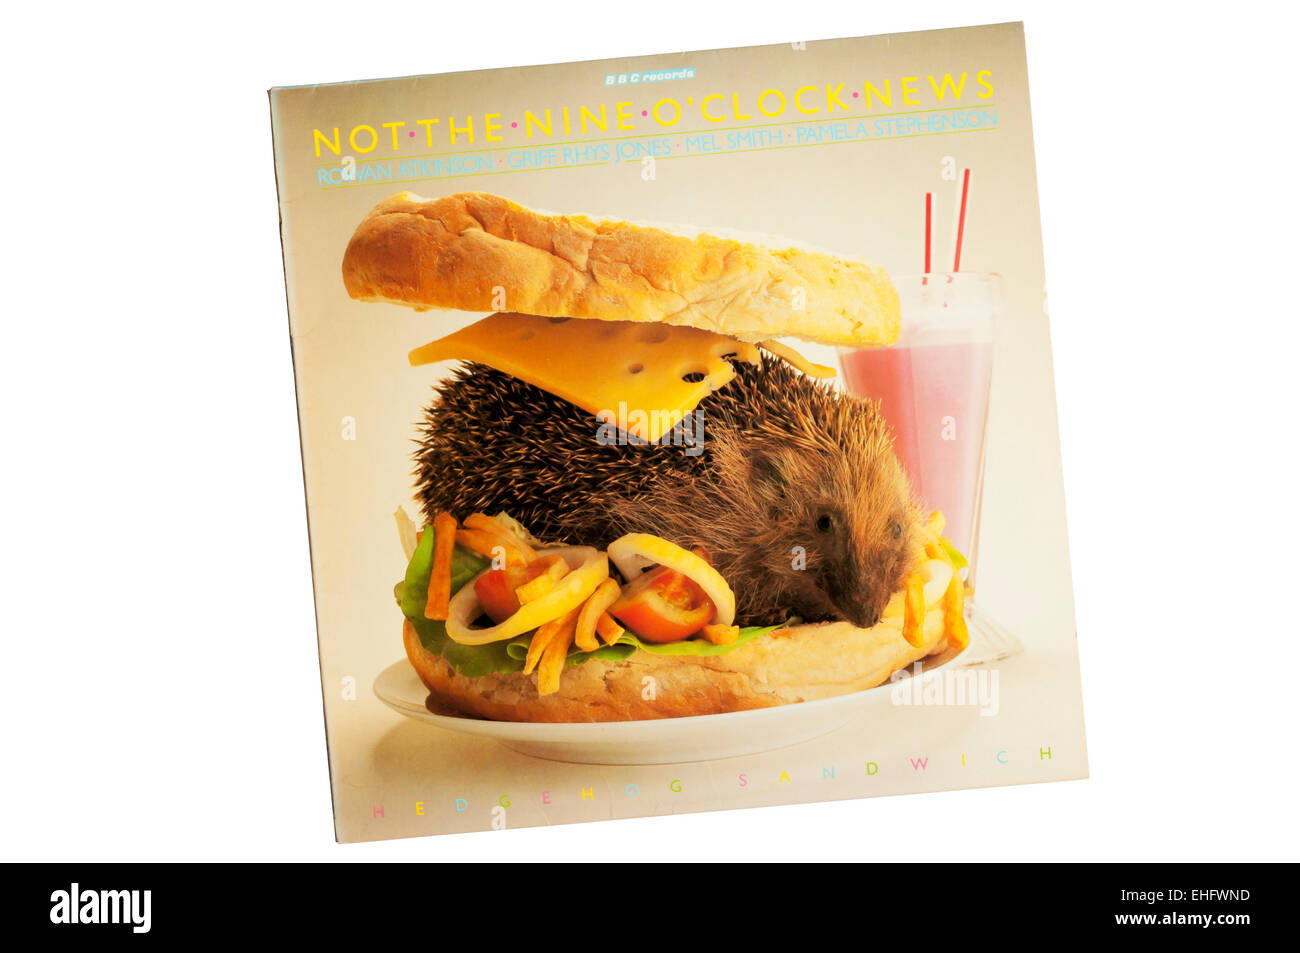 Hedgehog Sandwich was a 1981 collection of comedy sketches from the BBC TV show Not The Nine O'Clock News. - Stock Image